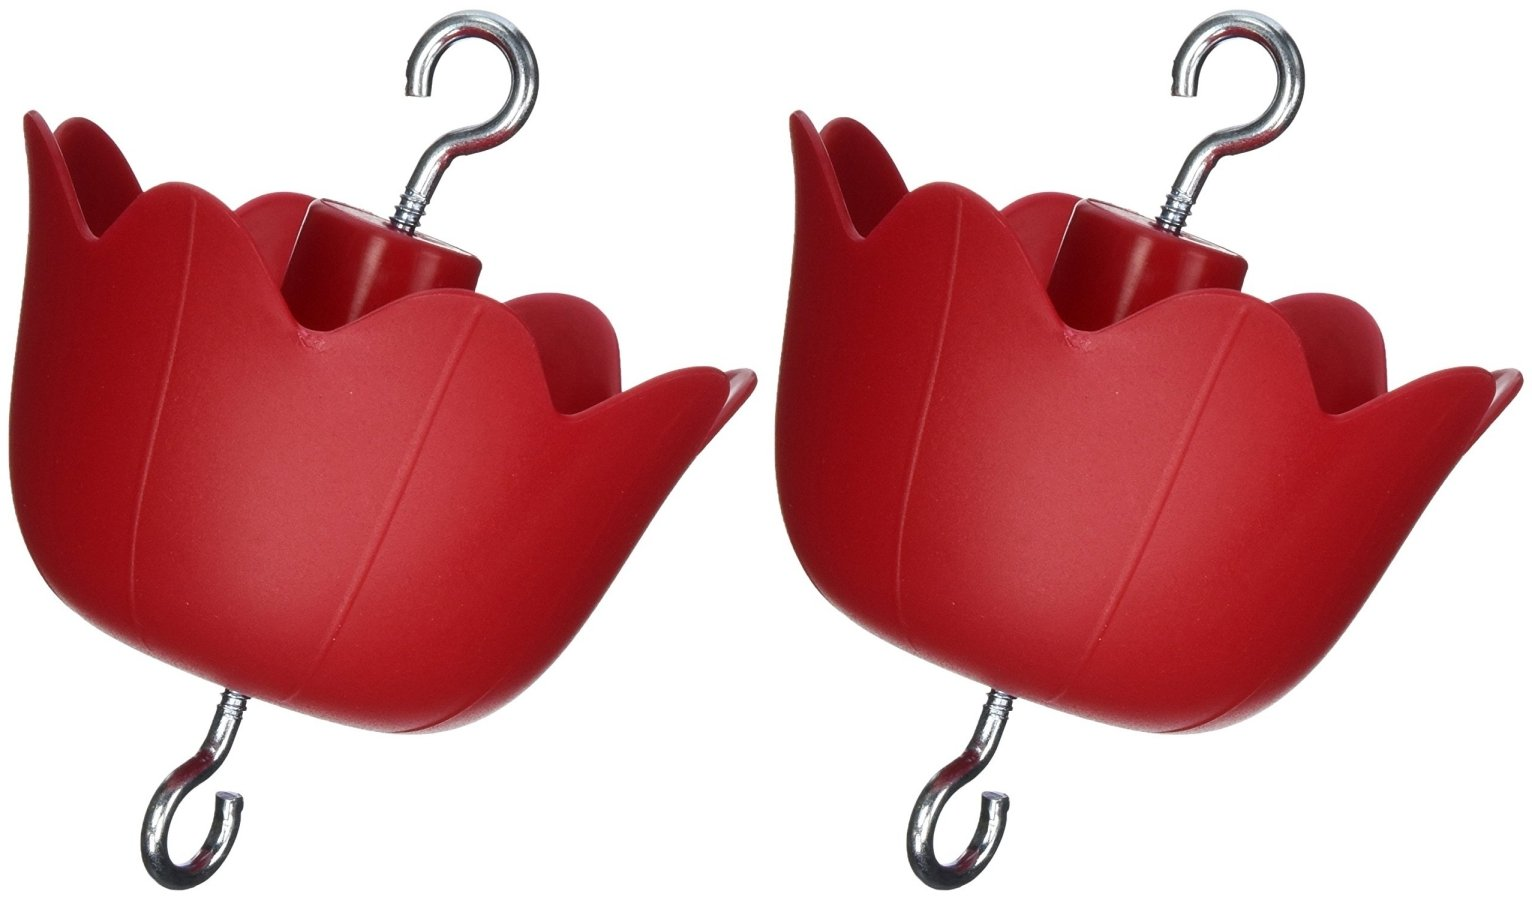 Hummers Galore® Hummingbird Feeder Insect Guard, Ant Moat, 2 Pack by Hummers Galore®